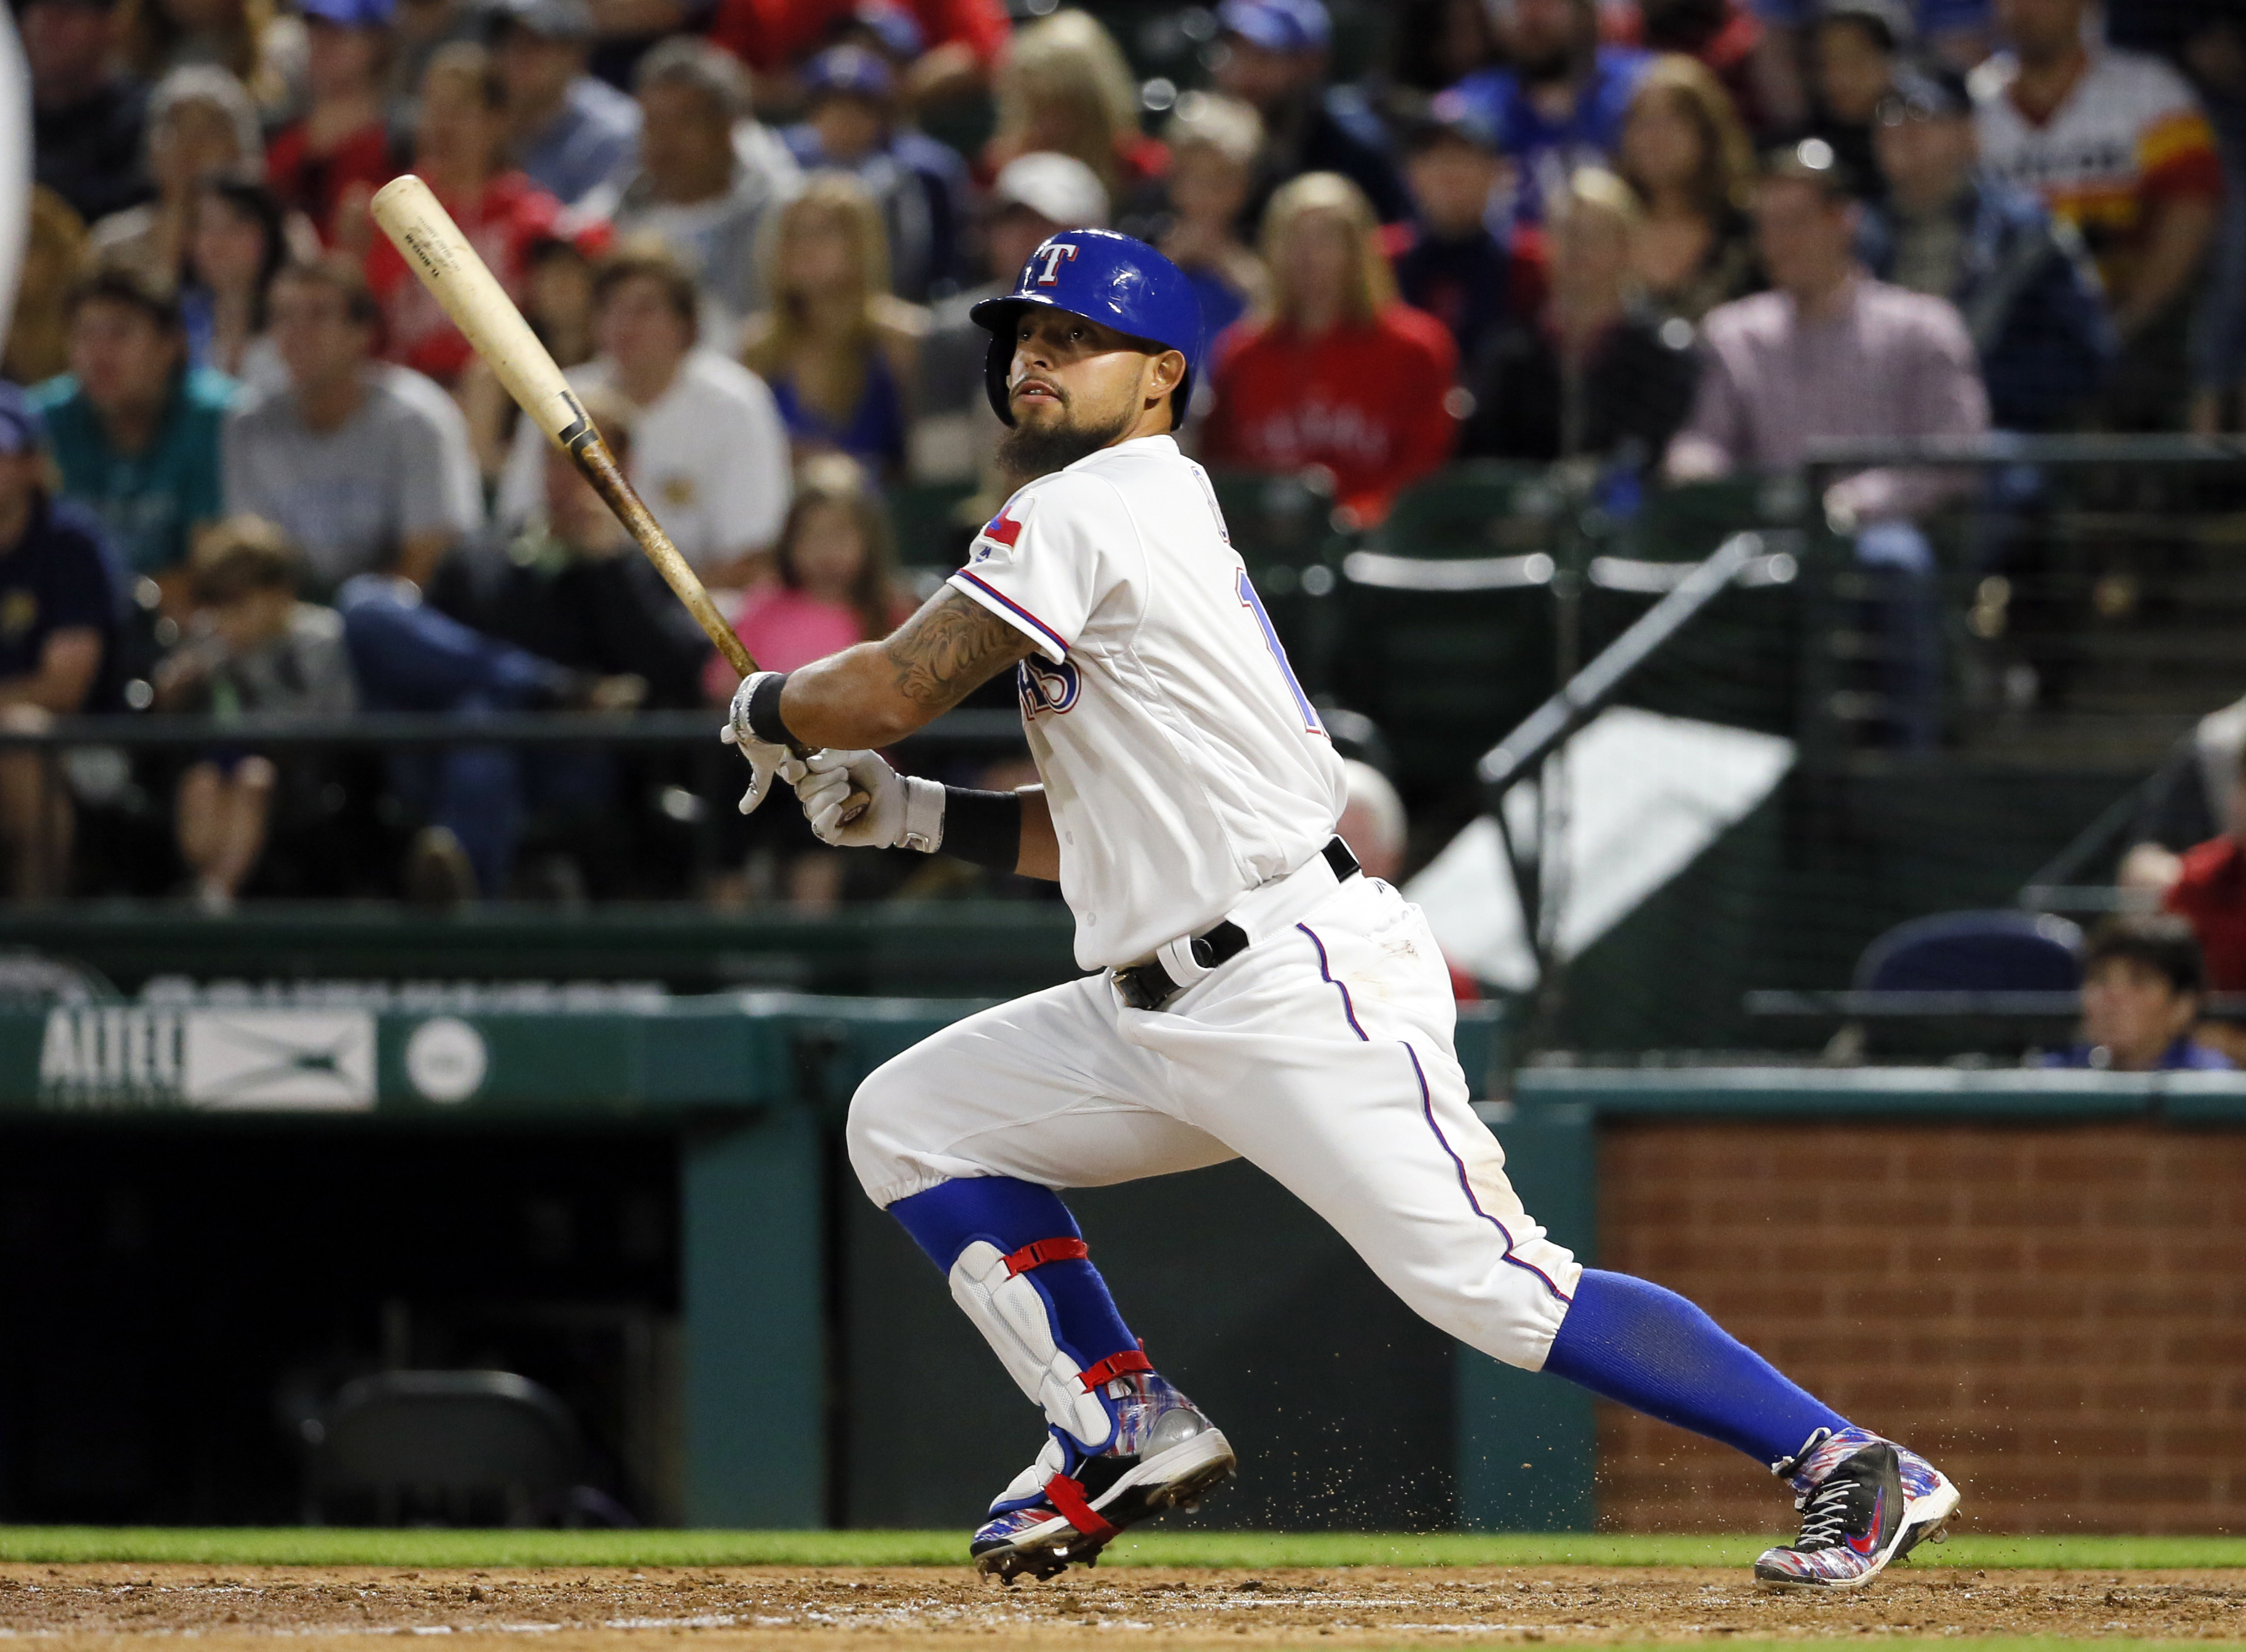 Texas Rangers' Rougned Odor watches his two-run double to left off Baltimore Orioles starting pitcher Chris Tillman during the sixth inning of a baseball game Thursday, April 14, 2016, in Arlington, Texas.  (AP Photo/Tony Gutierrez)